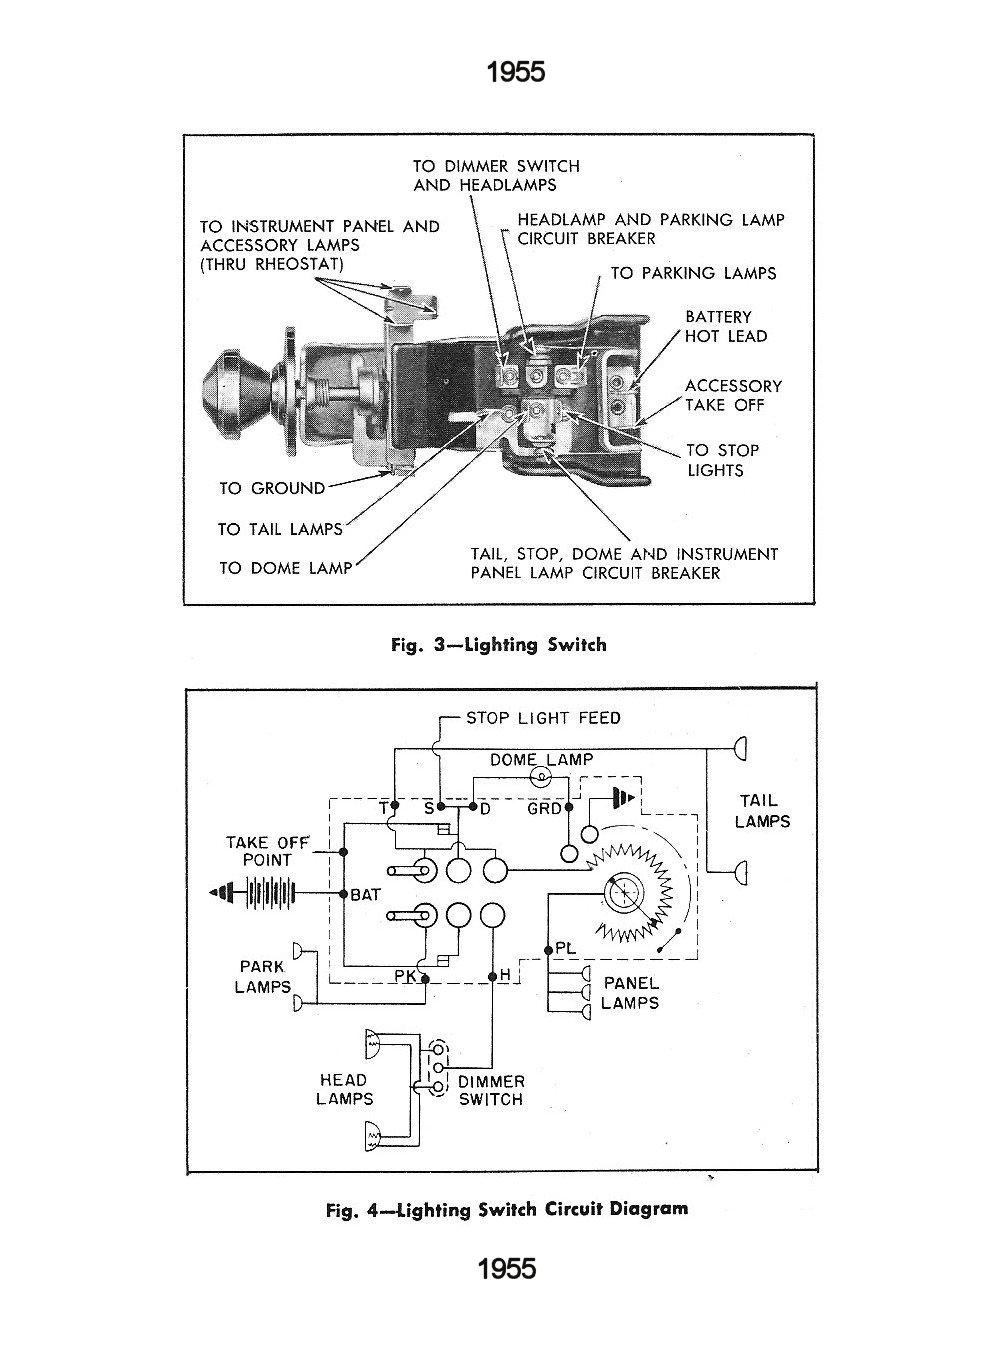 52 Chevy Wiring Diagram Worksheet And 1975 Chevrolet 1954 Headlight Switch Schematics Diagrams U2022 Rh Parntesis Co Alternator Harness